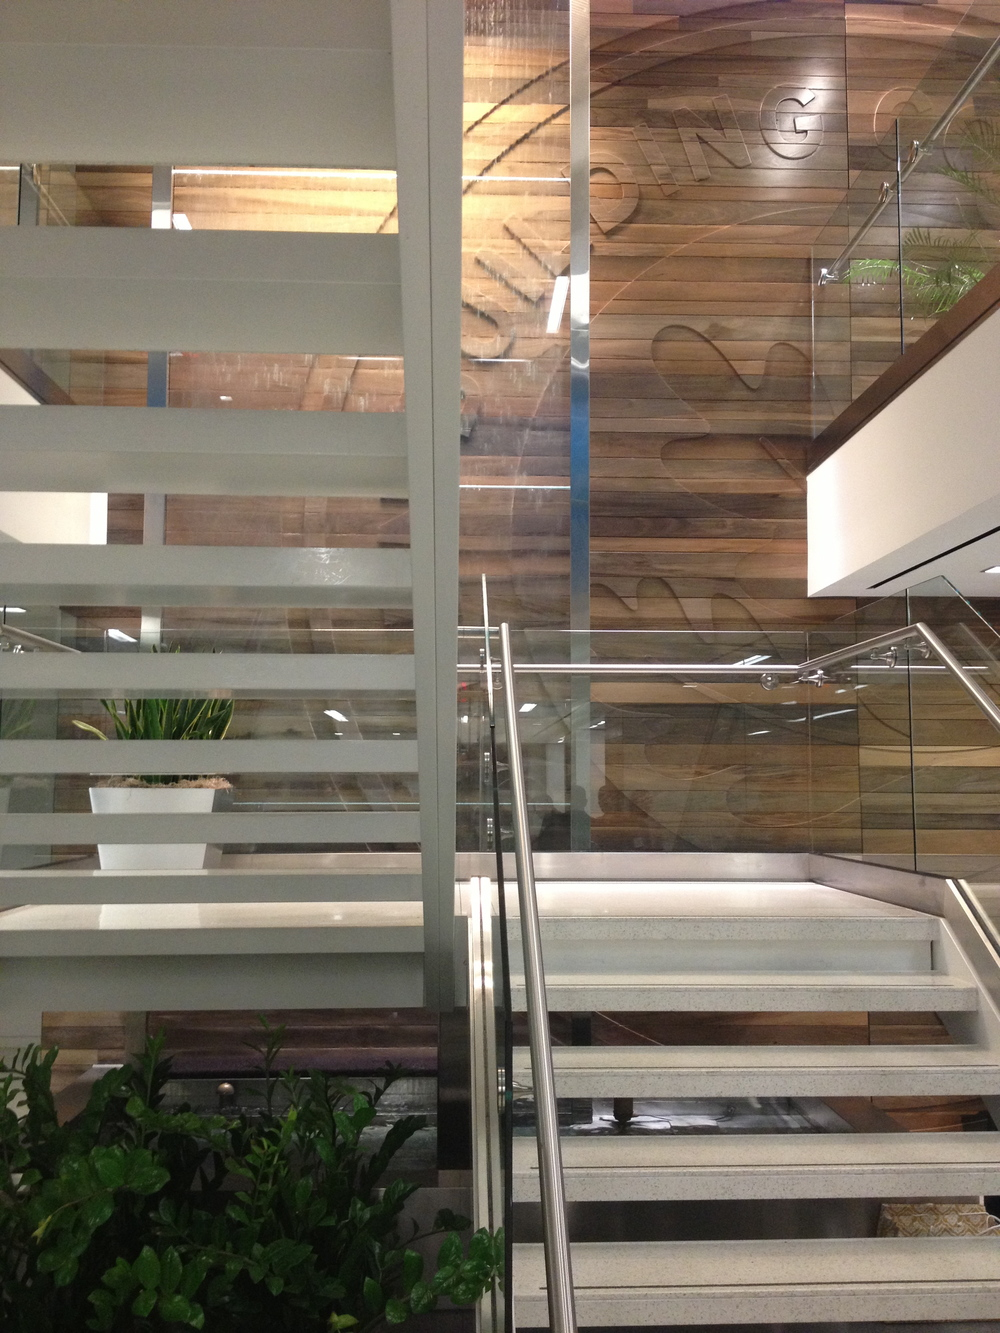 Staircase in U.S. Green Building Council Lobby. Staircase is supported by a thin carbon fiber, almost like a piece of tape, that acts as a support beam. Although you cannot build entire buildings with such material, this was sufficient for the space, and was used in place of putting in a new supporting beam and therefore preserving the visual integrity of the open space. All wooden plants are reclaimed from the bottom of a nearby river and the difference in colors indicated how deep the beam was buried. A waterfall regulates moisture levels and pulls particulates out of the air, improving indoor air quality.